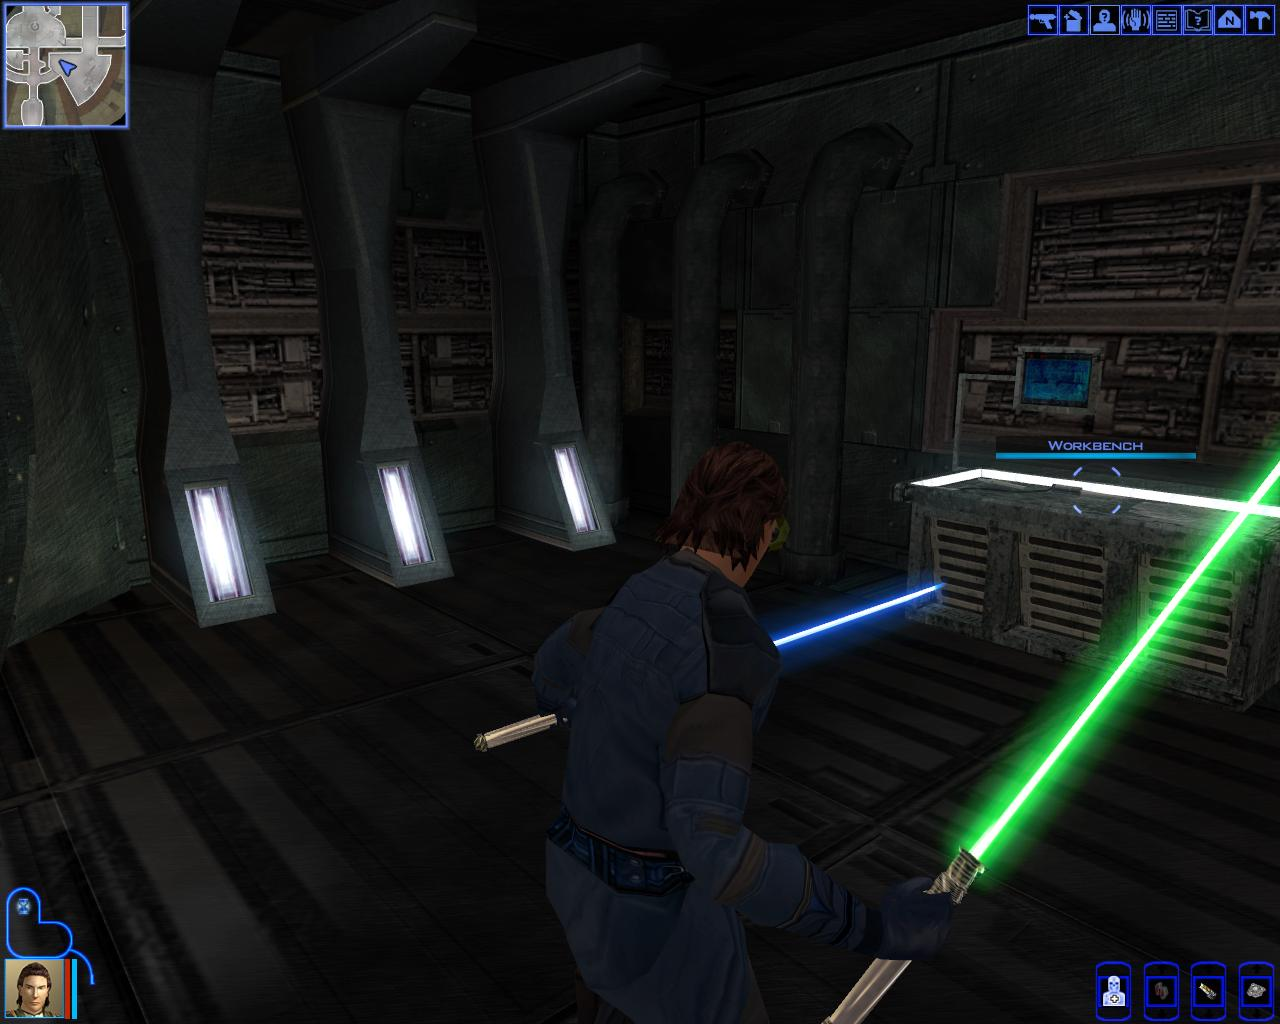 Star wars kotor nude mods hentai photo